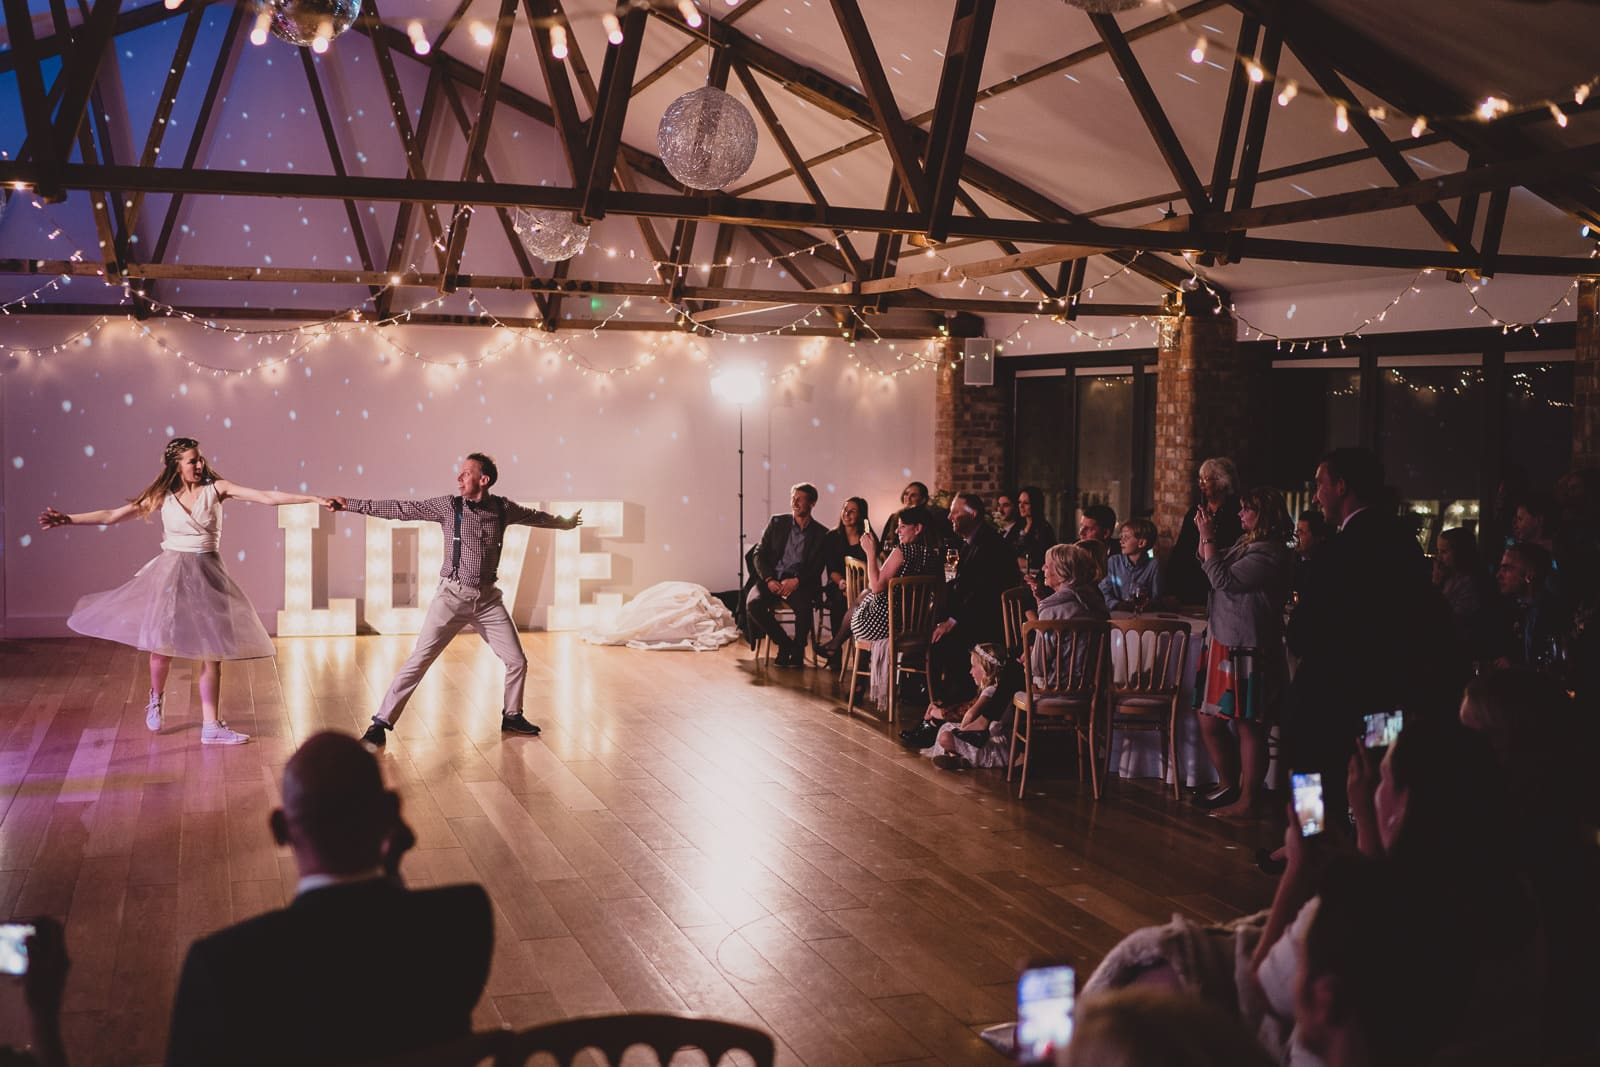 An extravagant first dance in The Red Brick Barn at The Green in Liskeard.